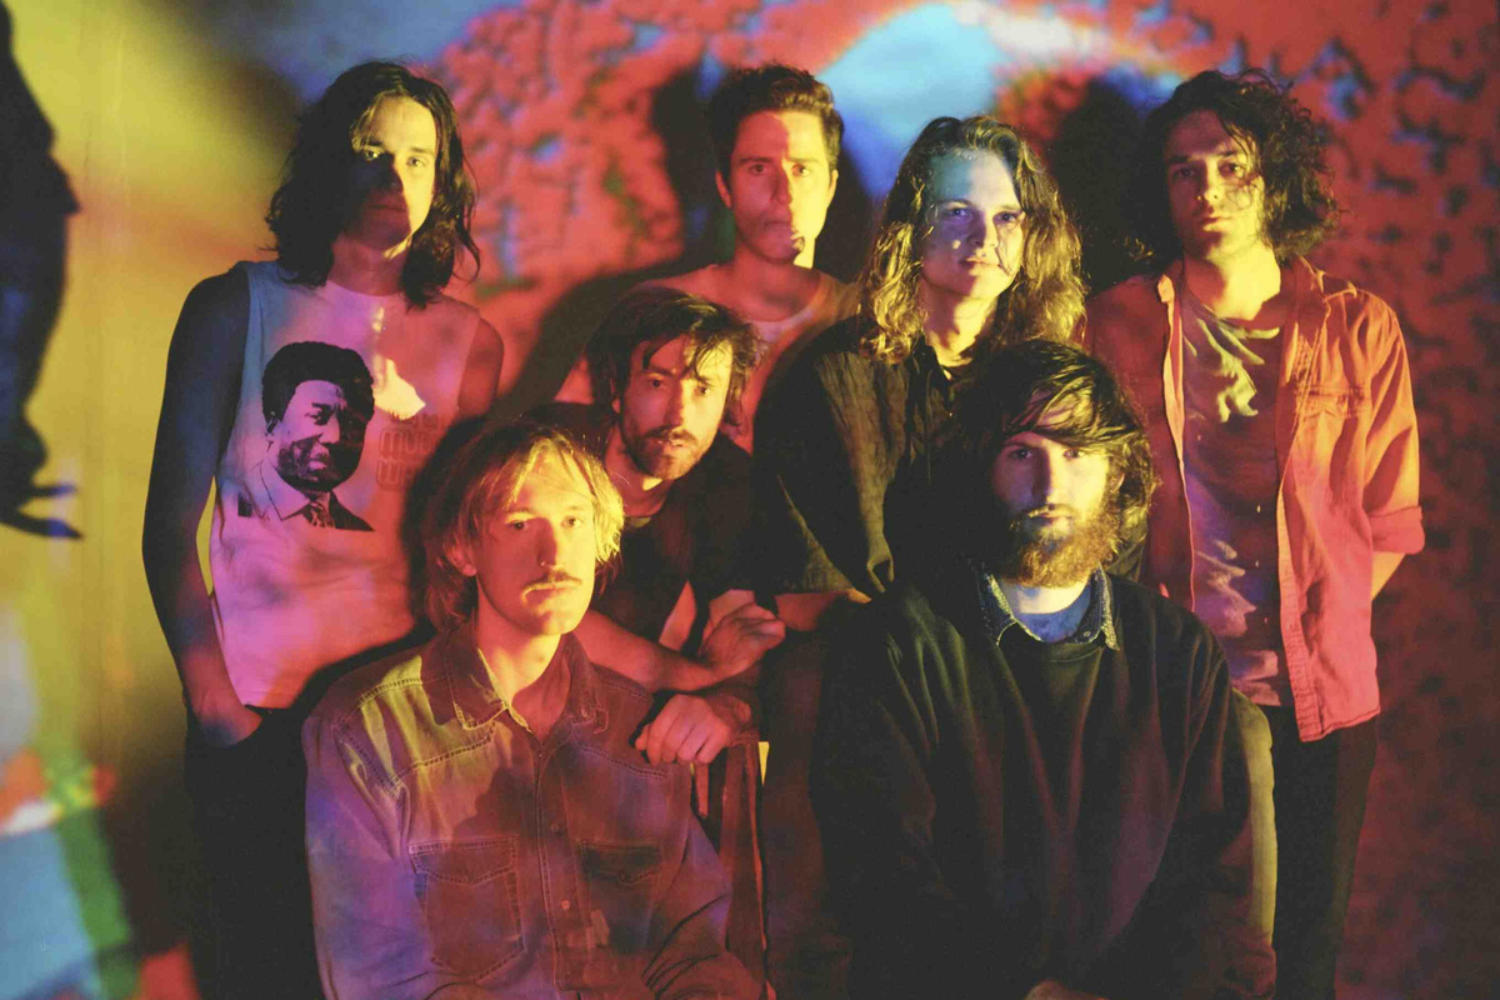 King Gizzard & The Lizard Wizard reveal new single 'Organ Farmer', the first taste of their new thrash metal LP